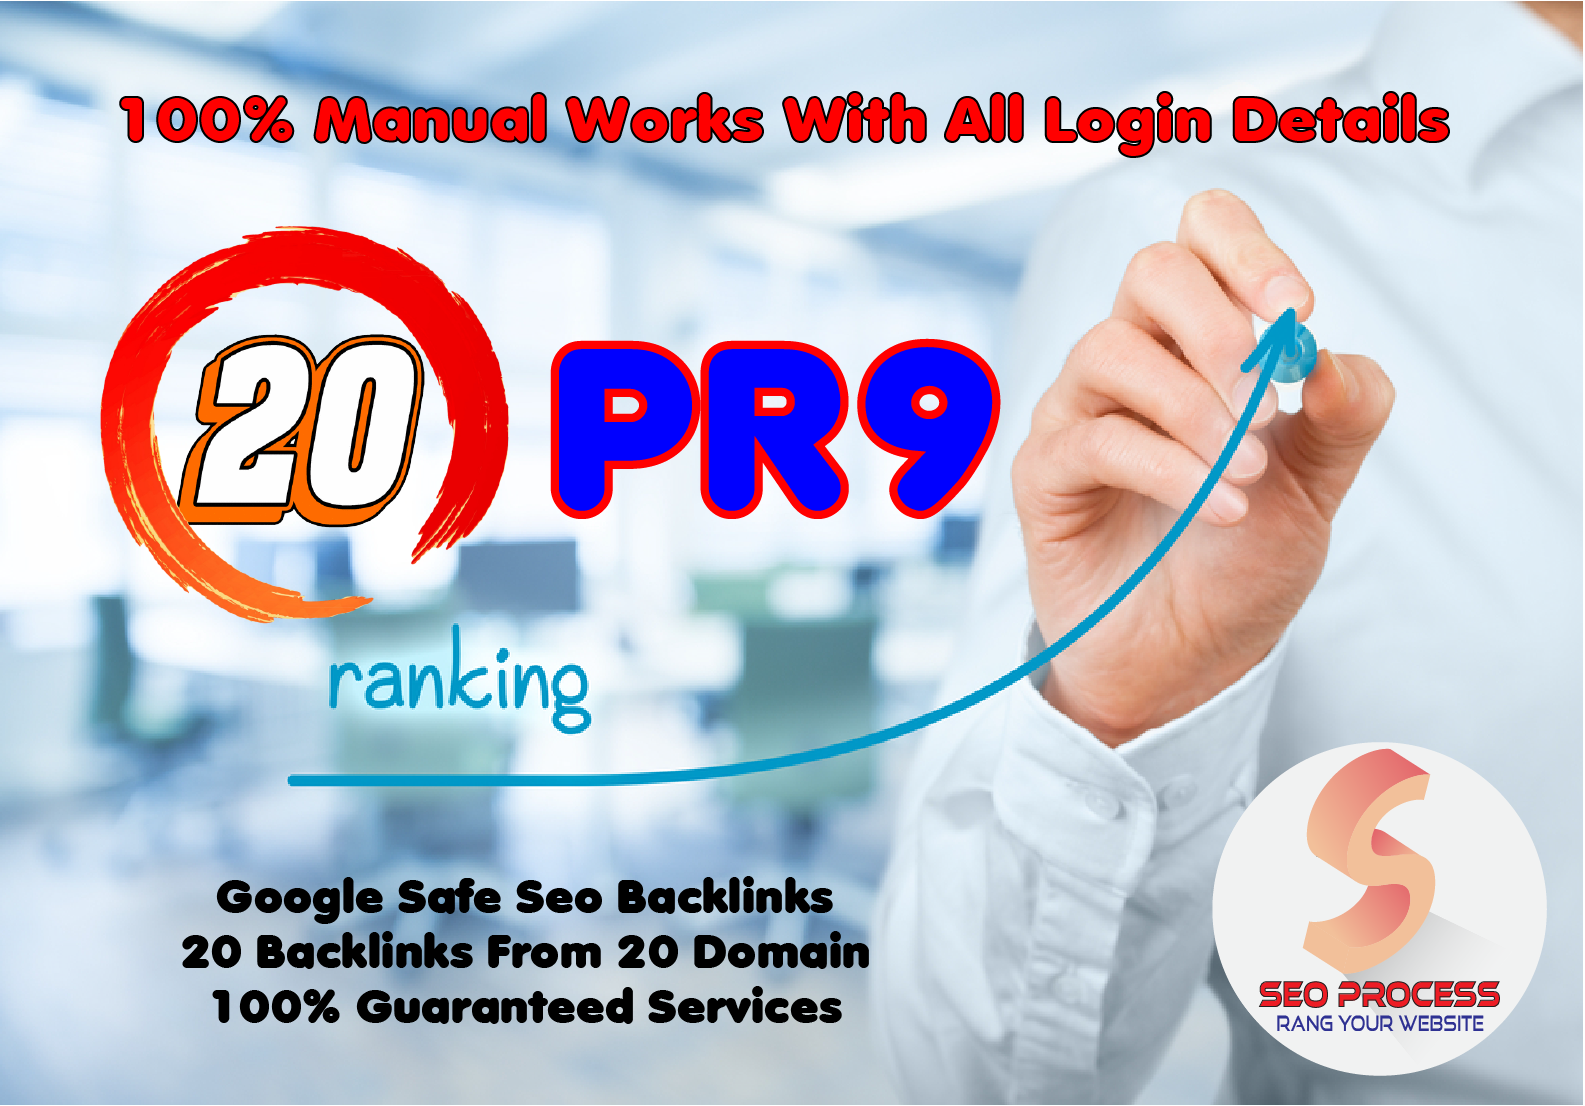 20 Pr9 - 90+ DA High Quality SEO Domain Authority Permanent Backlinks - Fire Your Google Ranking